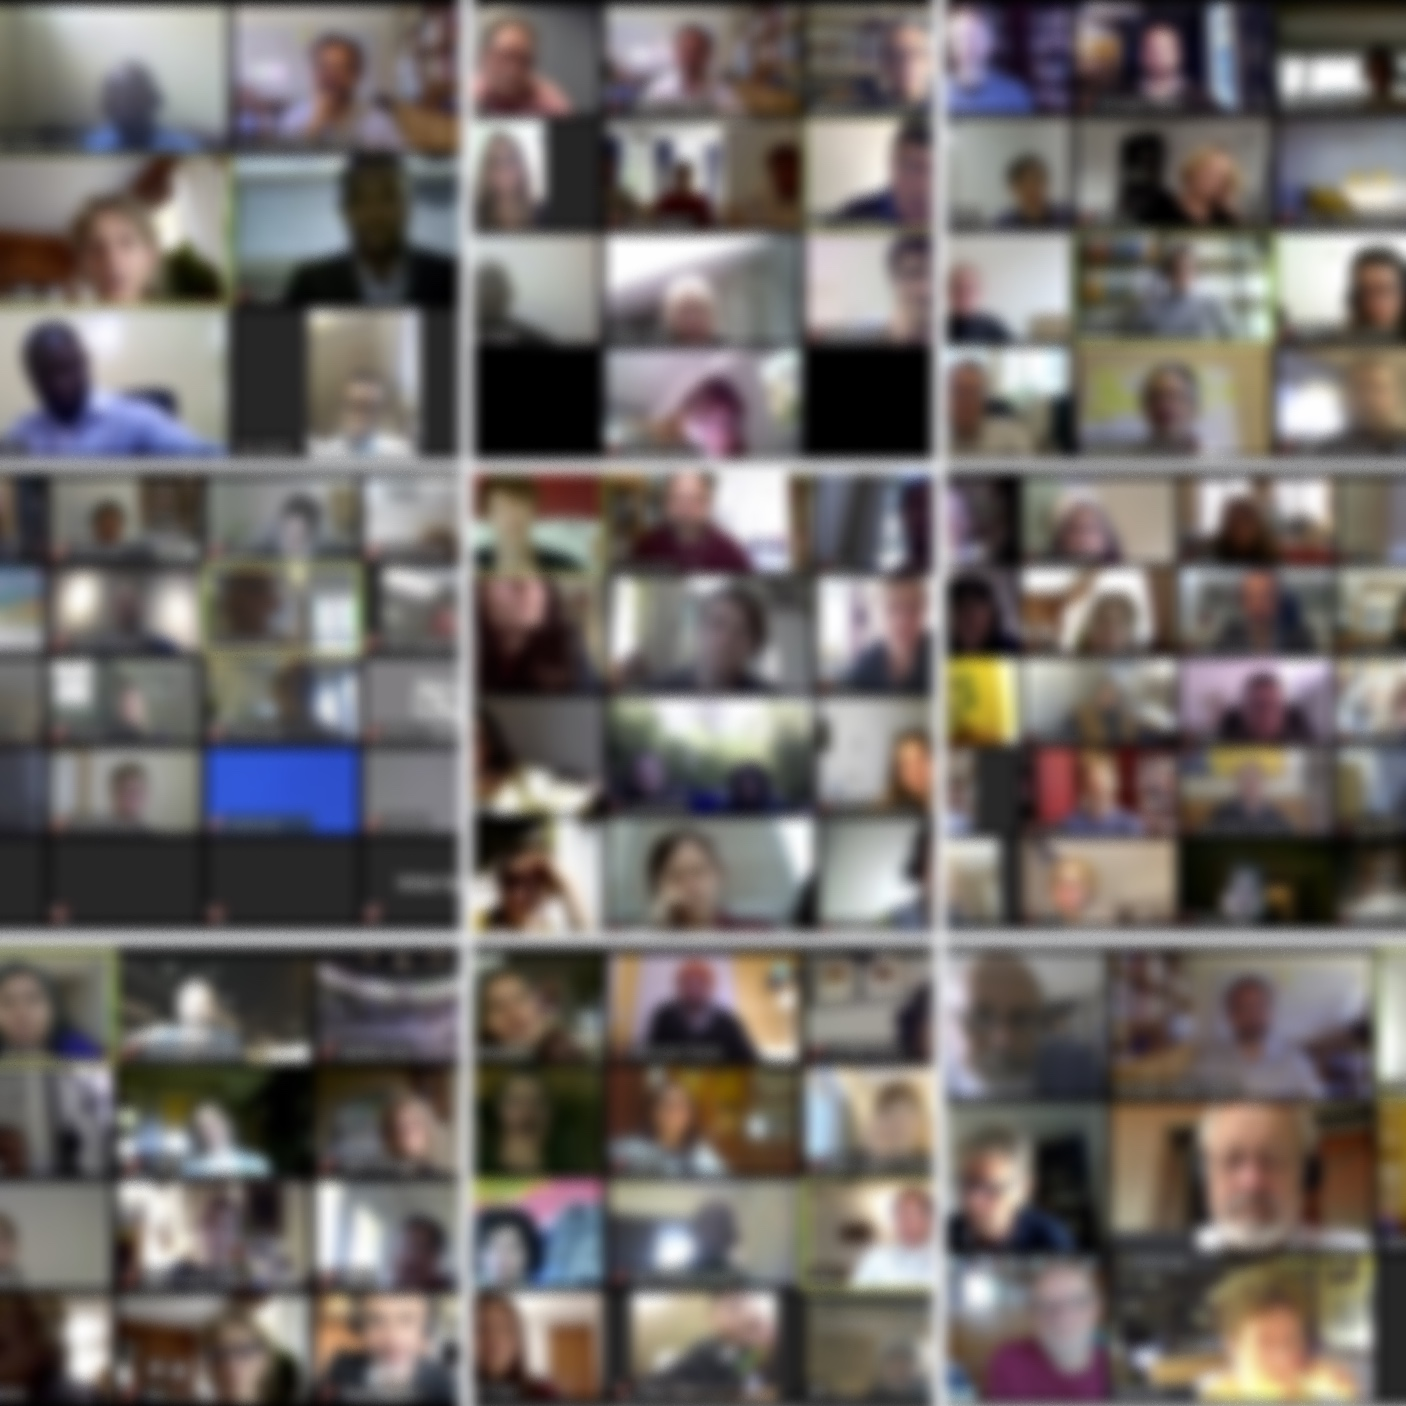 Network+%28faces+should+not+be++identifiable%29.jpg